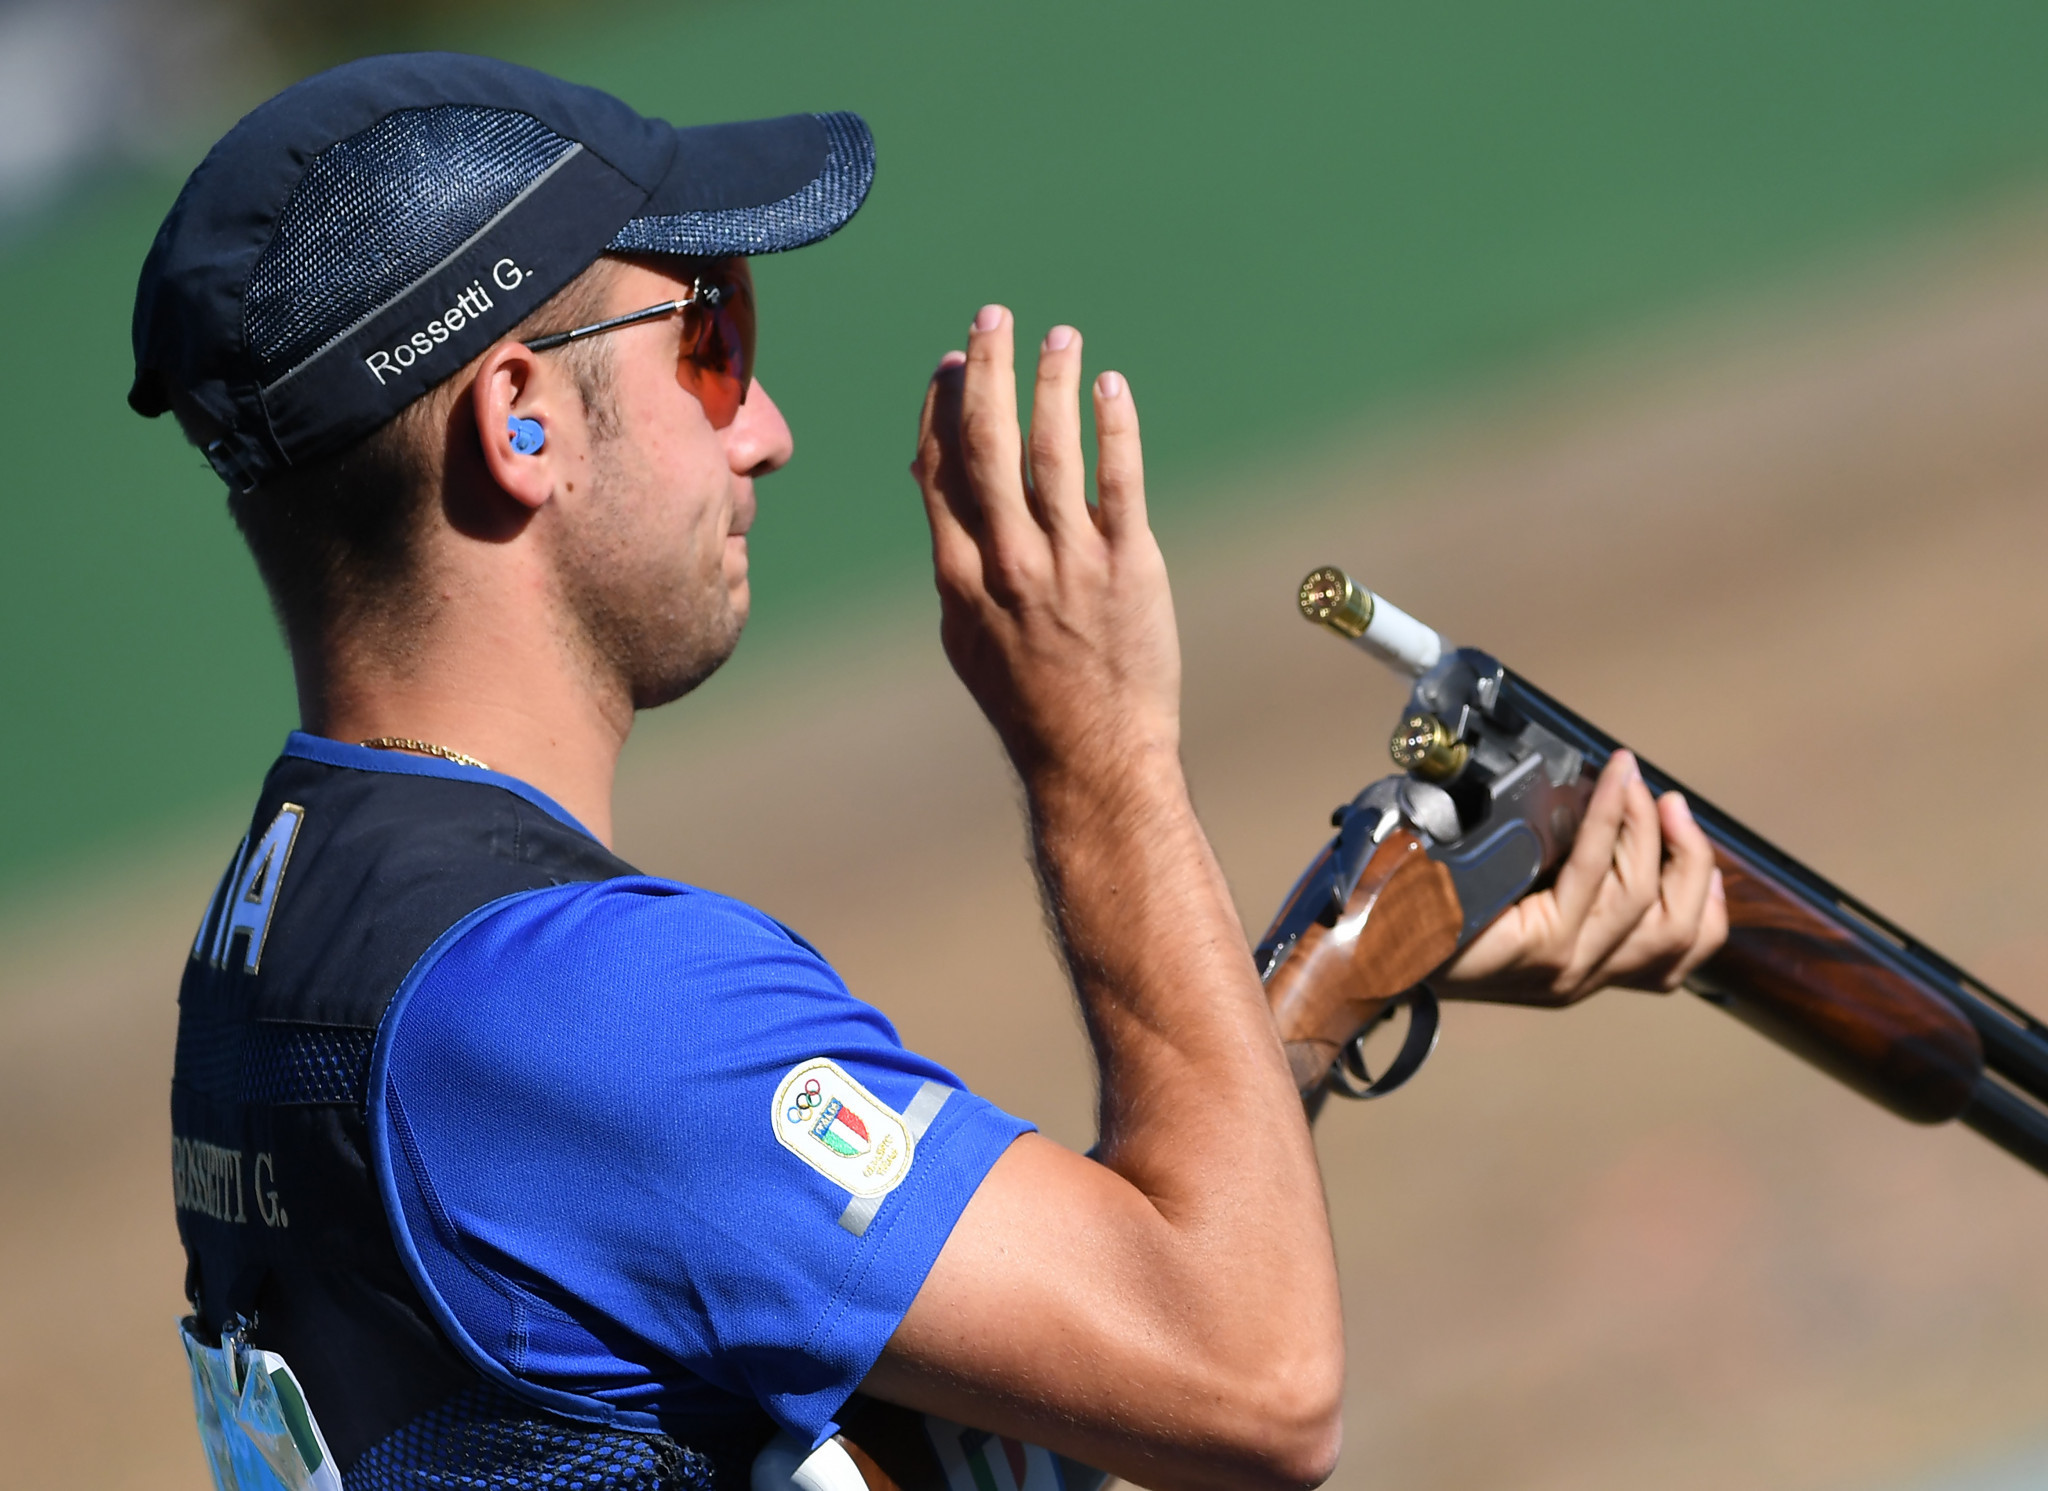 Double team skeet success for hosts Italy at ISSF Shotgun World Cup